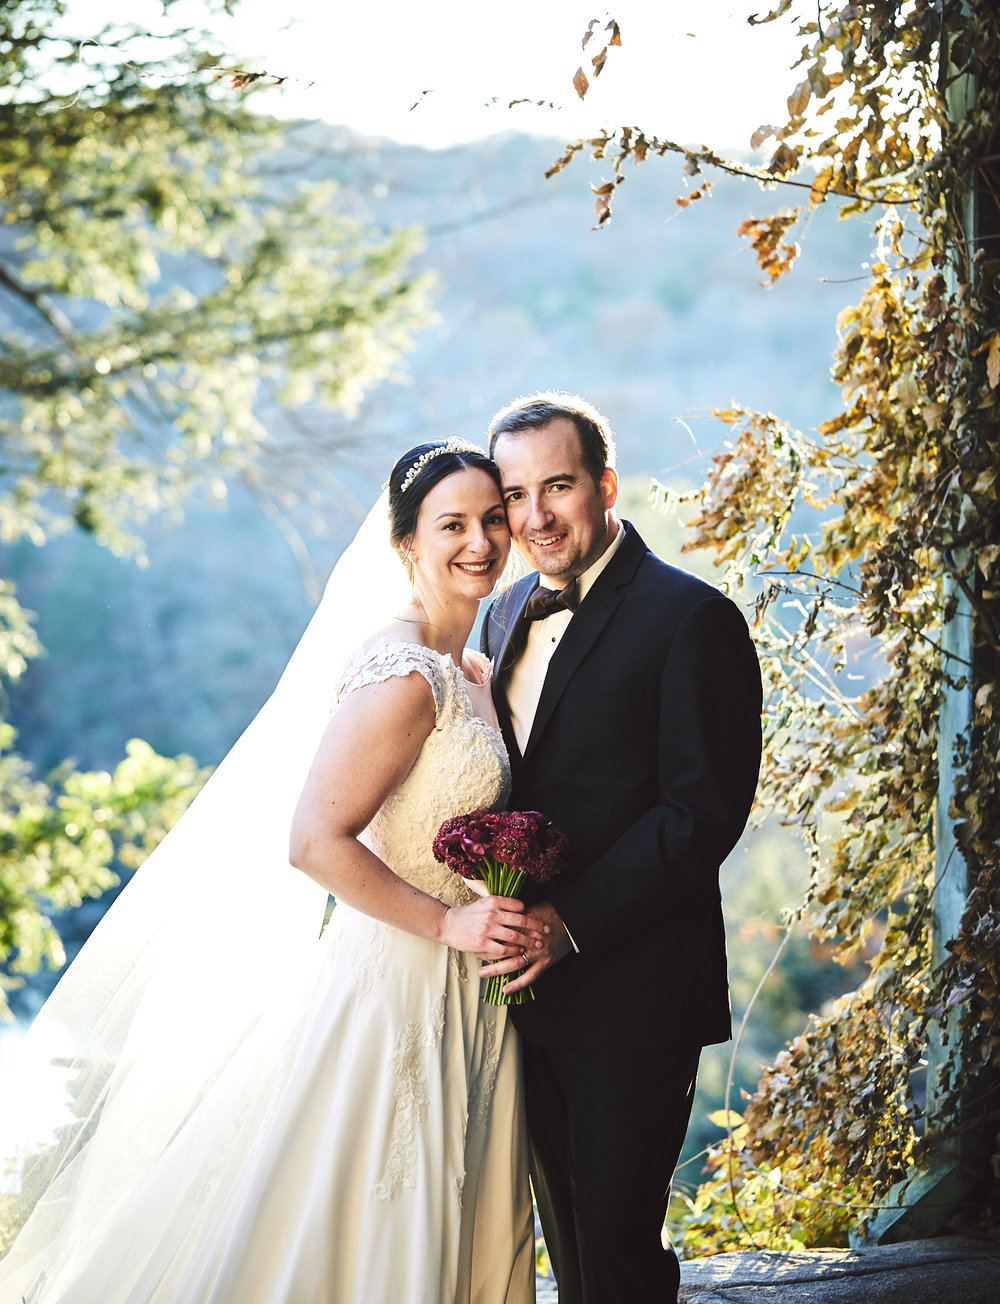 181110_ArrowParkFallWeddingPhotography_NYWeddingPhotographer_By_BriJohnsonWeddings_0081.jpg